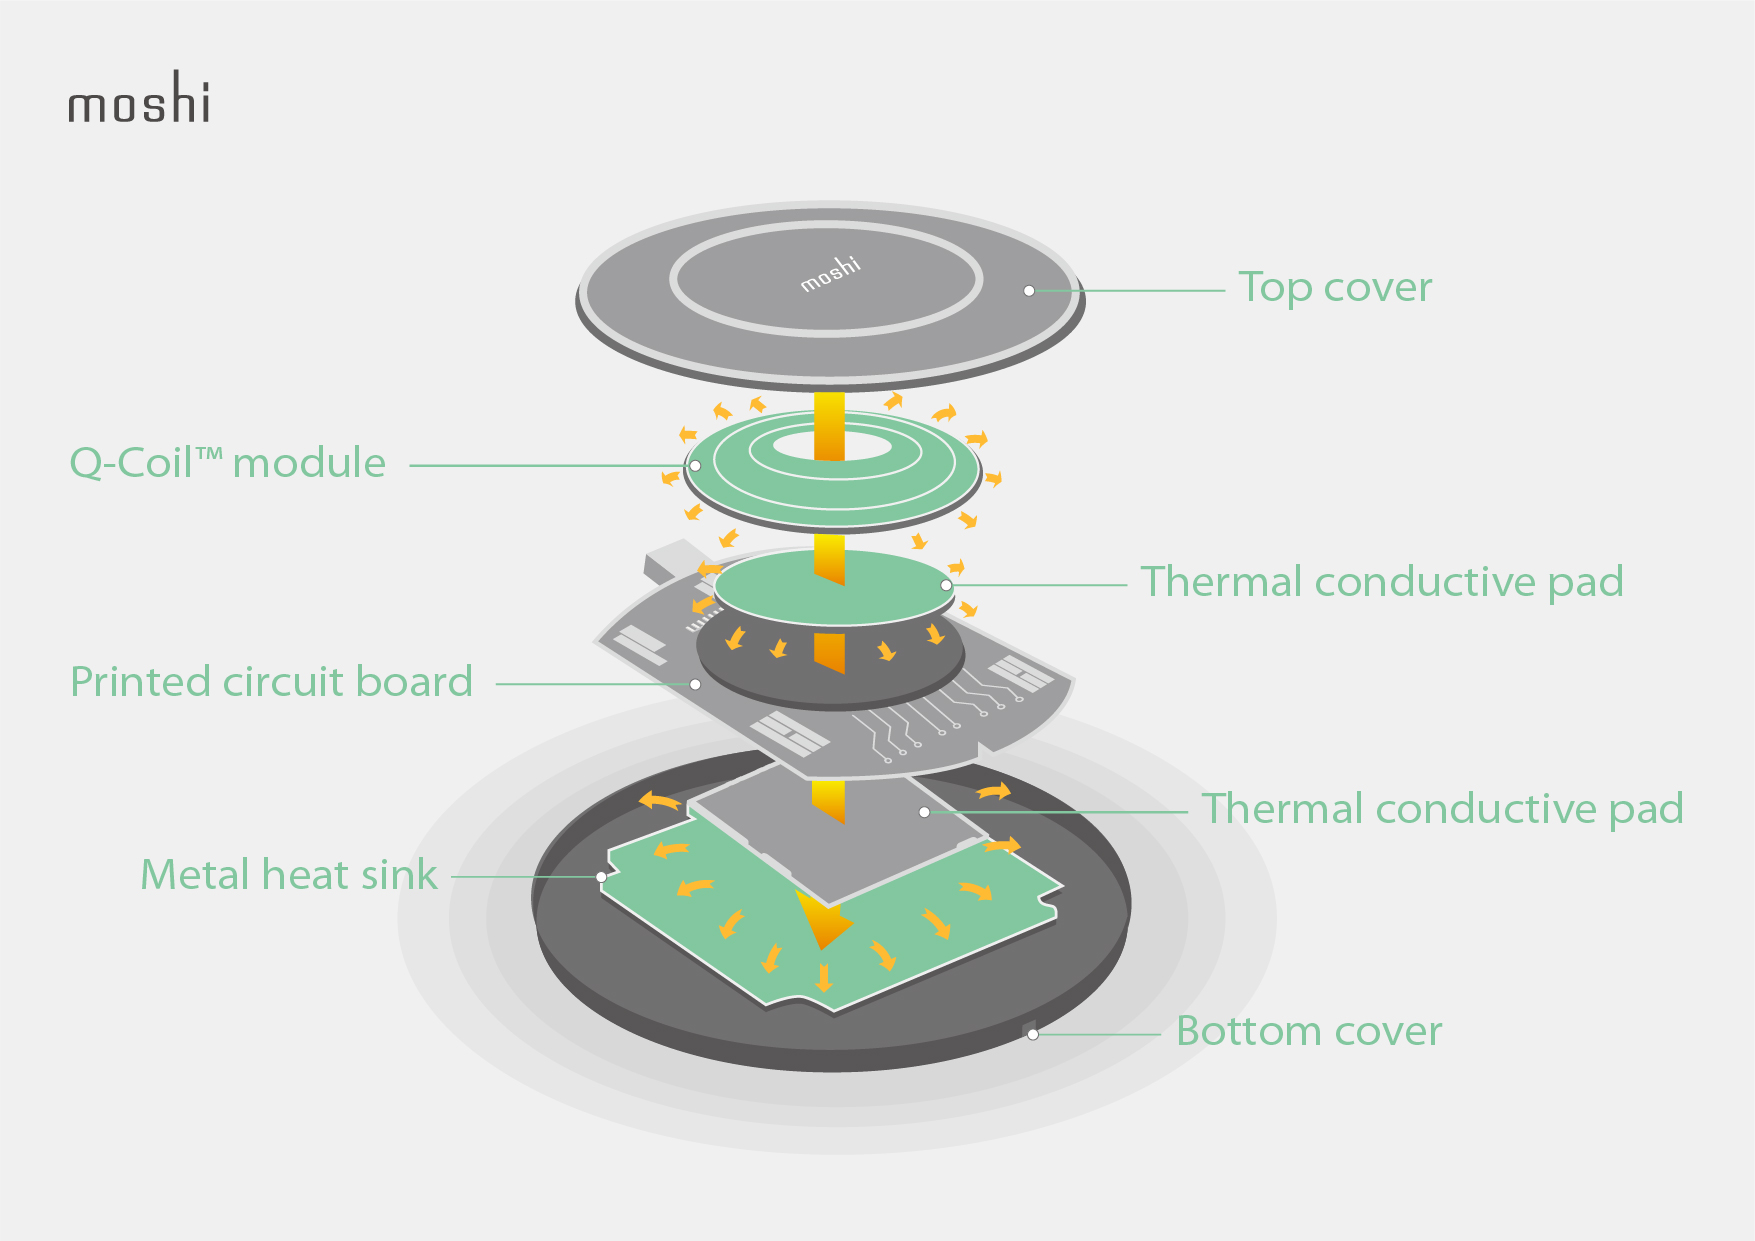 Exploding diagram showing the internal components of Moshi's Q-coil module